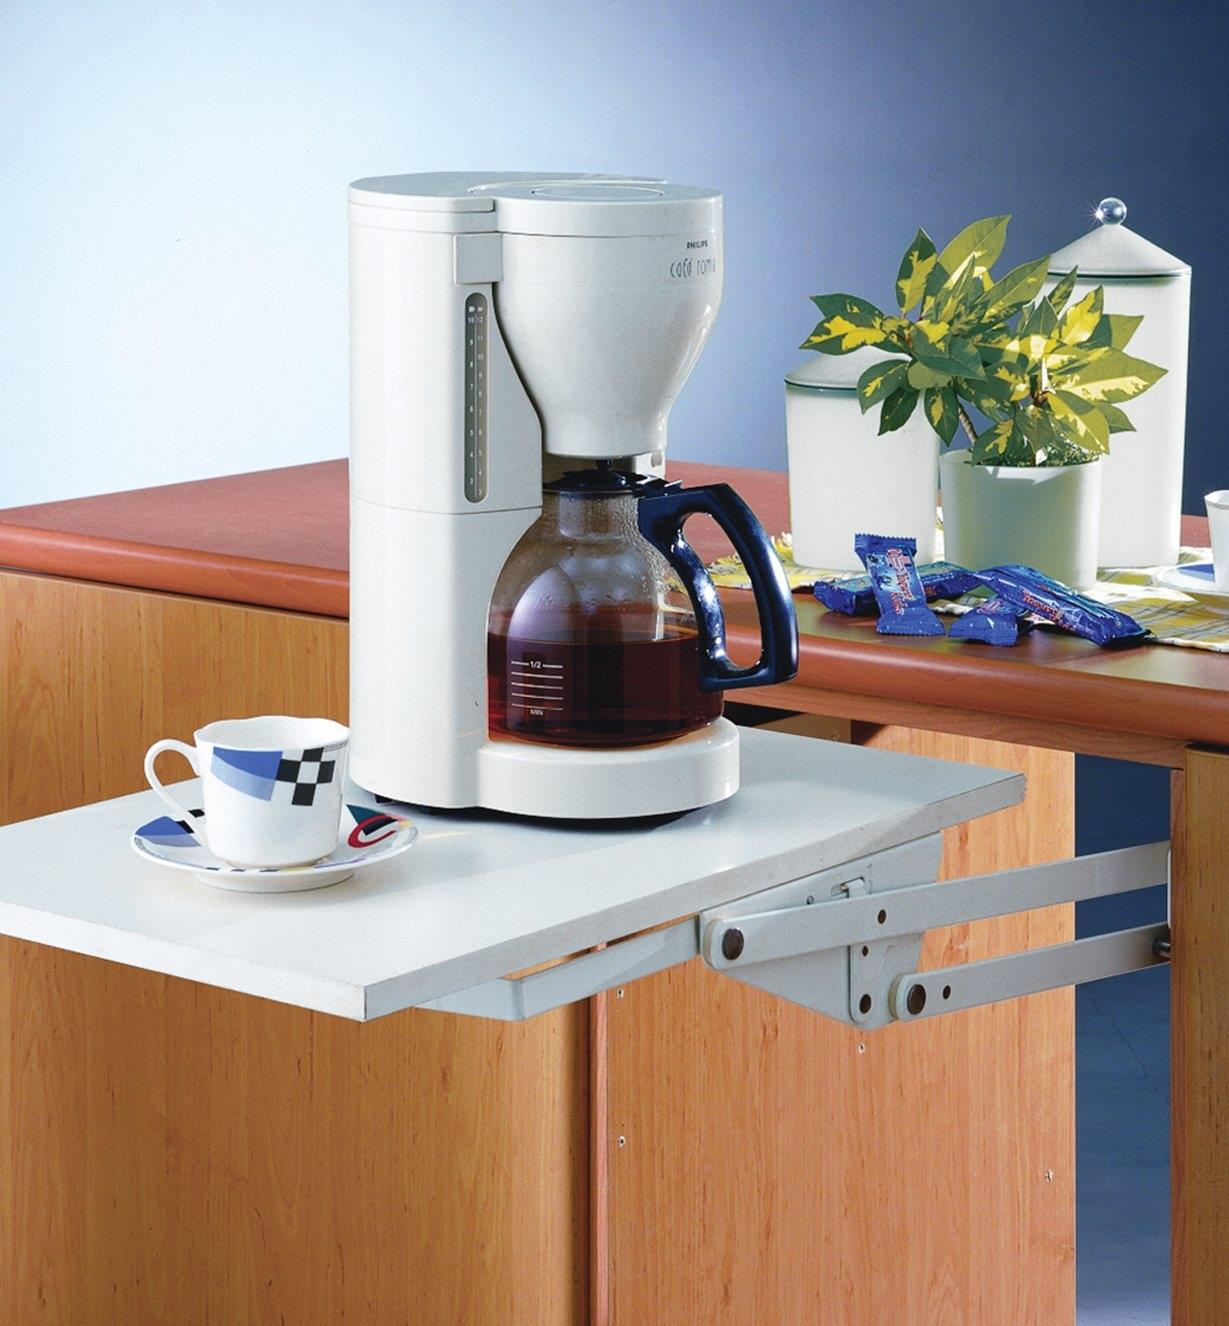 A swing-up shelf made with the Appliance Lift in the in-use position, holding a coffeemaker